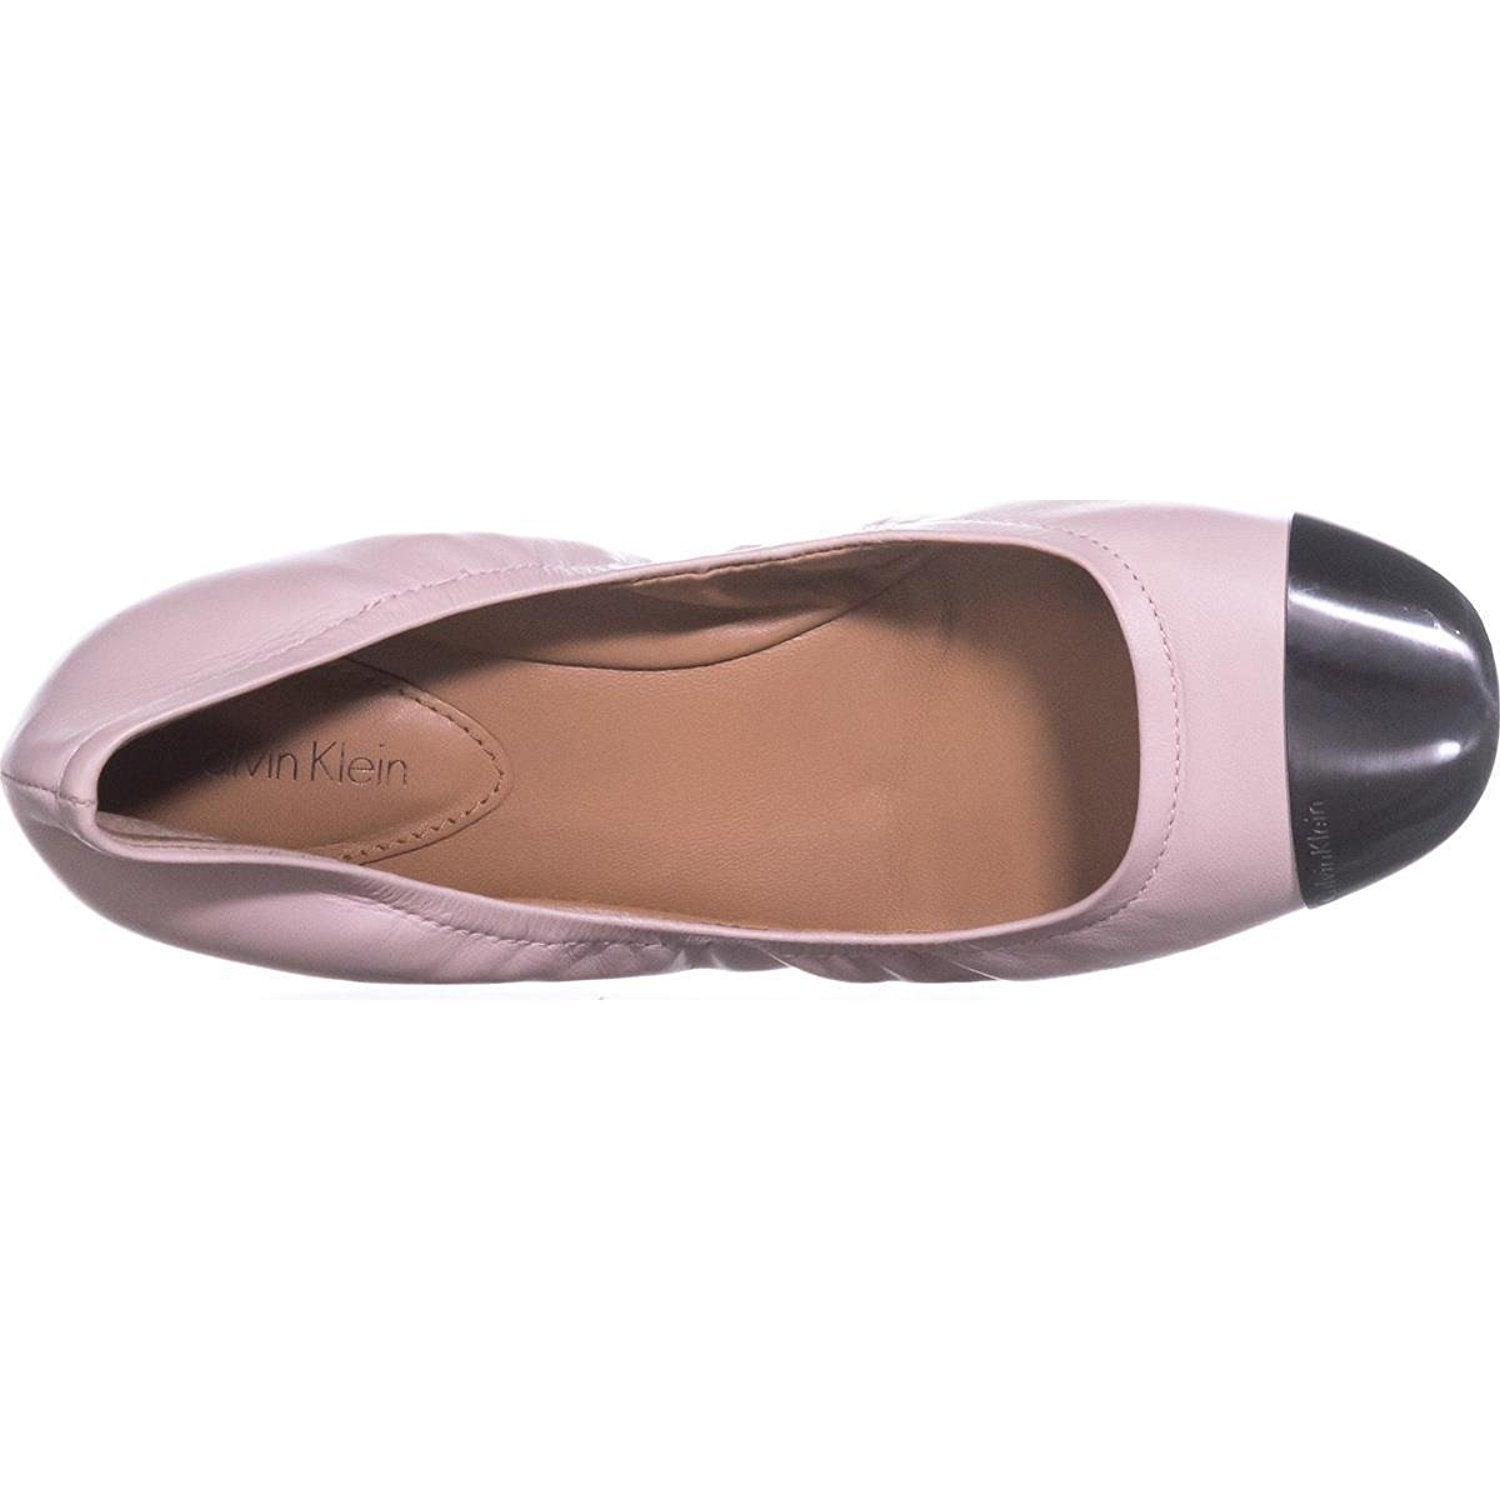 d0d9fb297a8a Shop Calvin Klein Womens Fiana Leather Cap Toe Ballet Flats - Free Shipping  On Orders Over  45 - Overstock - 19808064